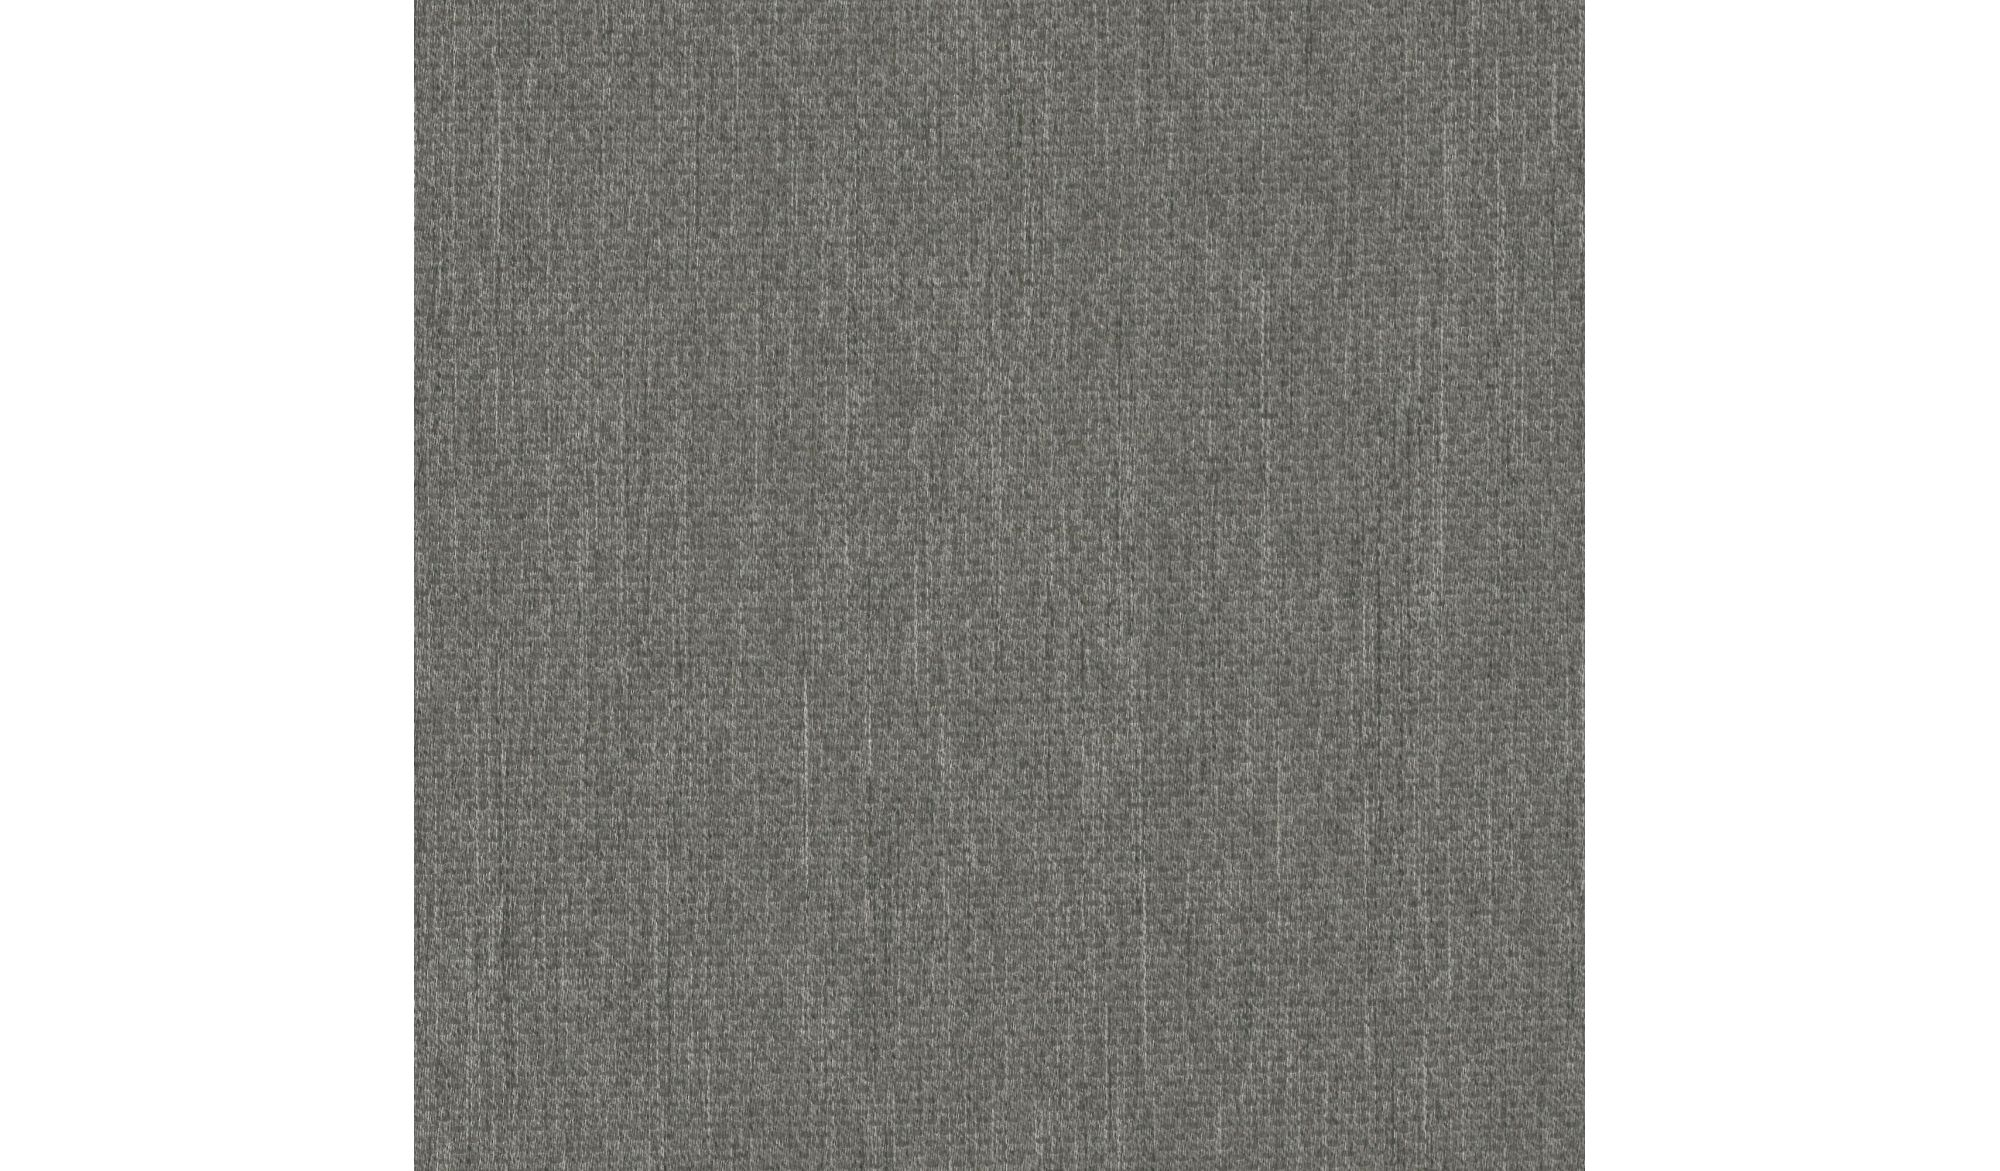 CASSANDER Chrome-13 - Fabric alt_tkaniny_kolor_chrome-13 decorative Dimout Plain - Colour